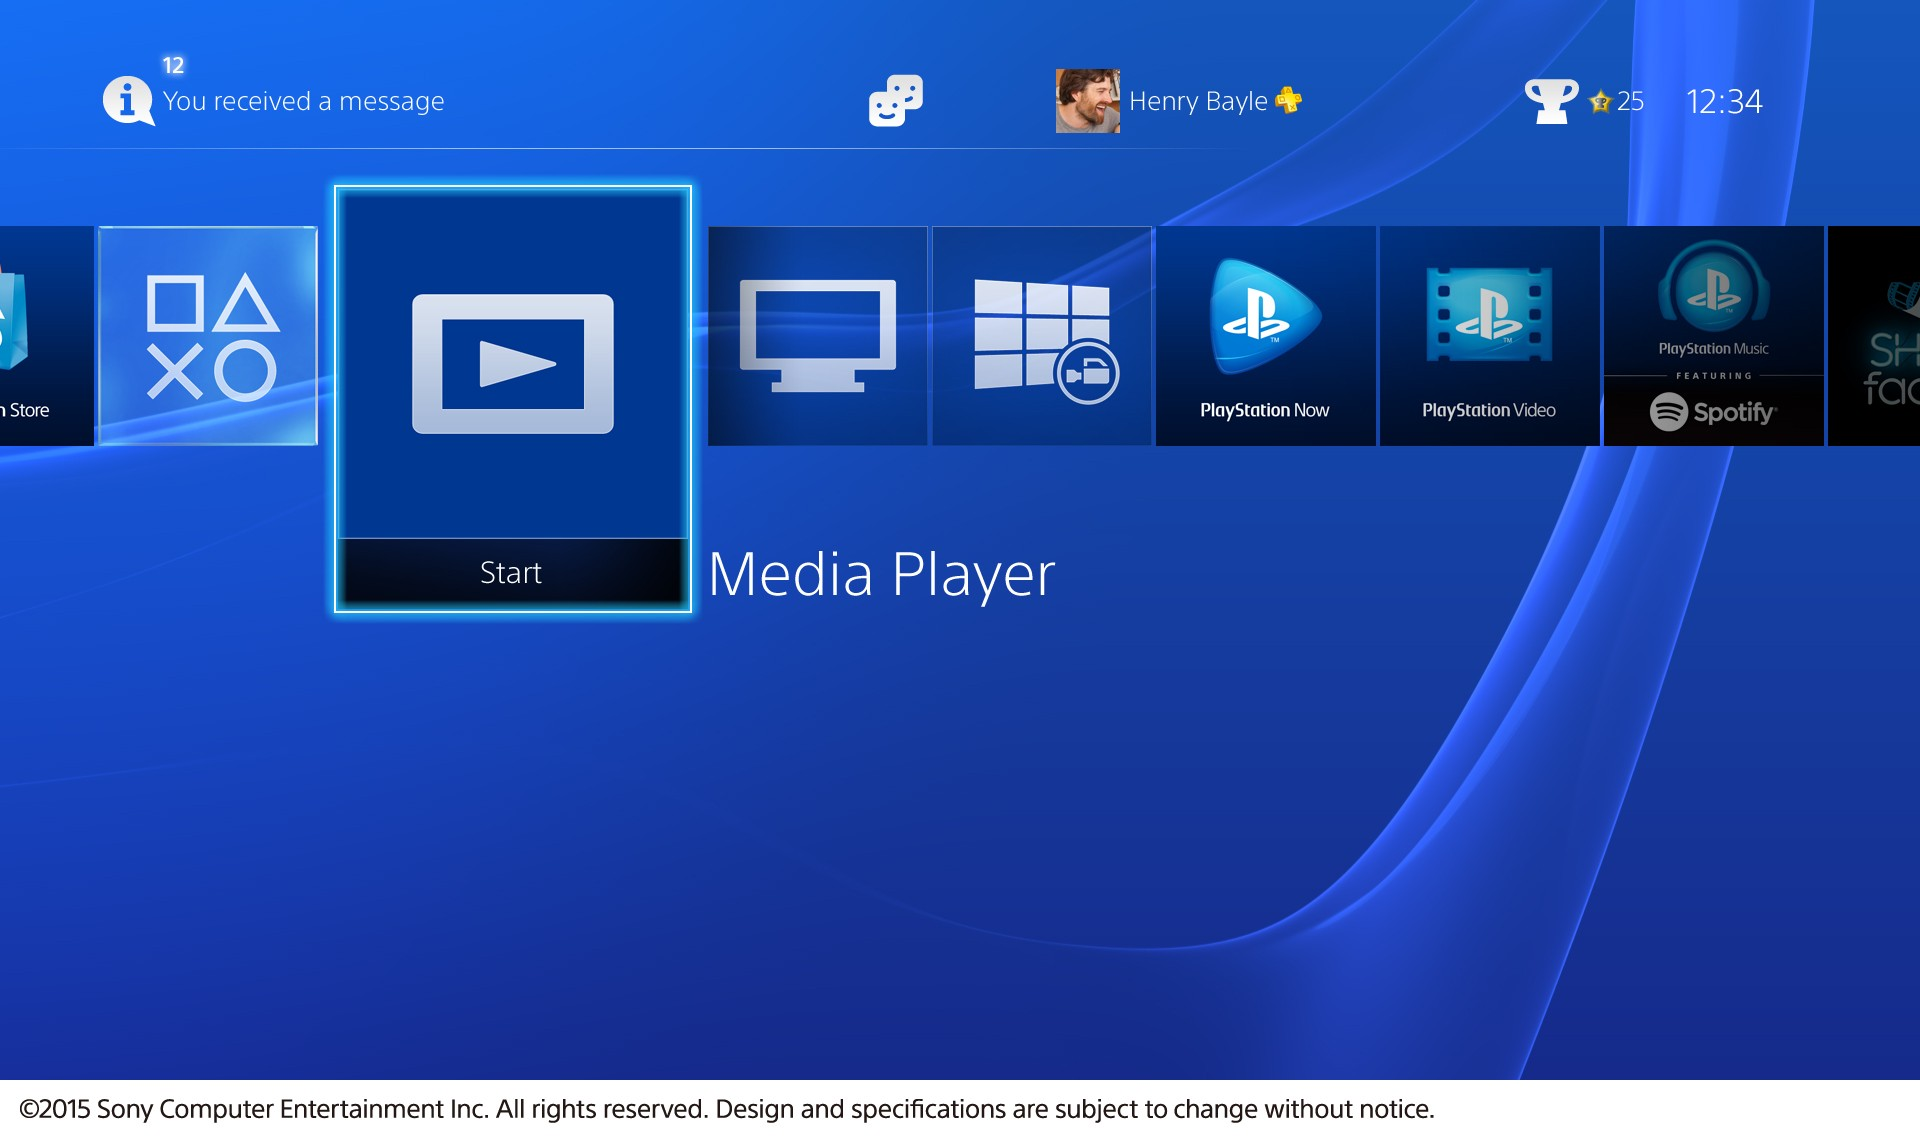 Ps4 media player app now available for download, supports mkv, avi.